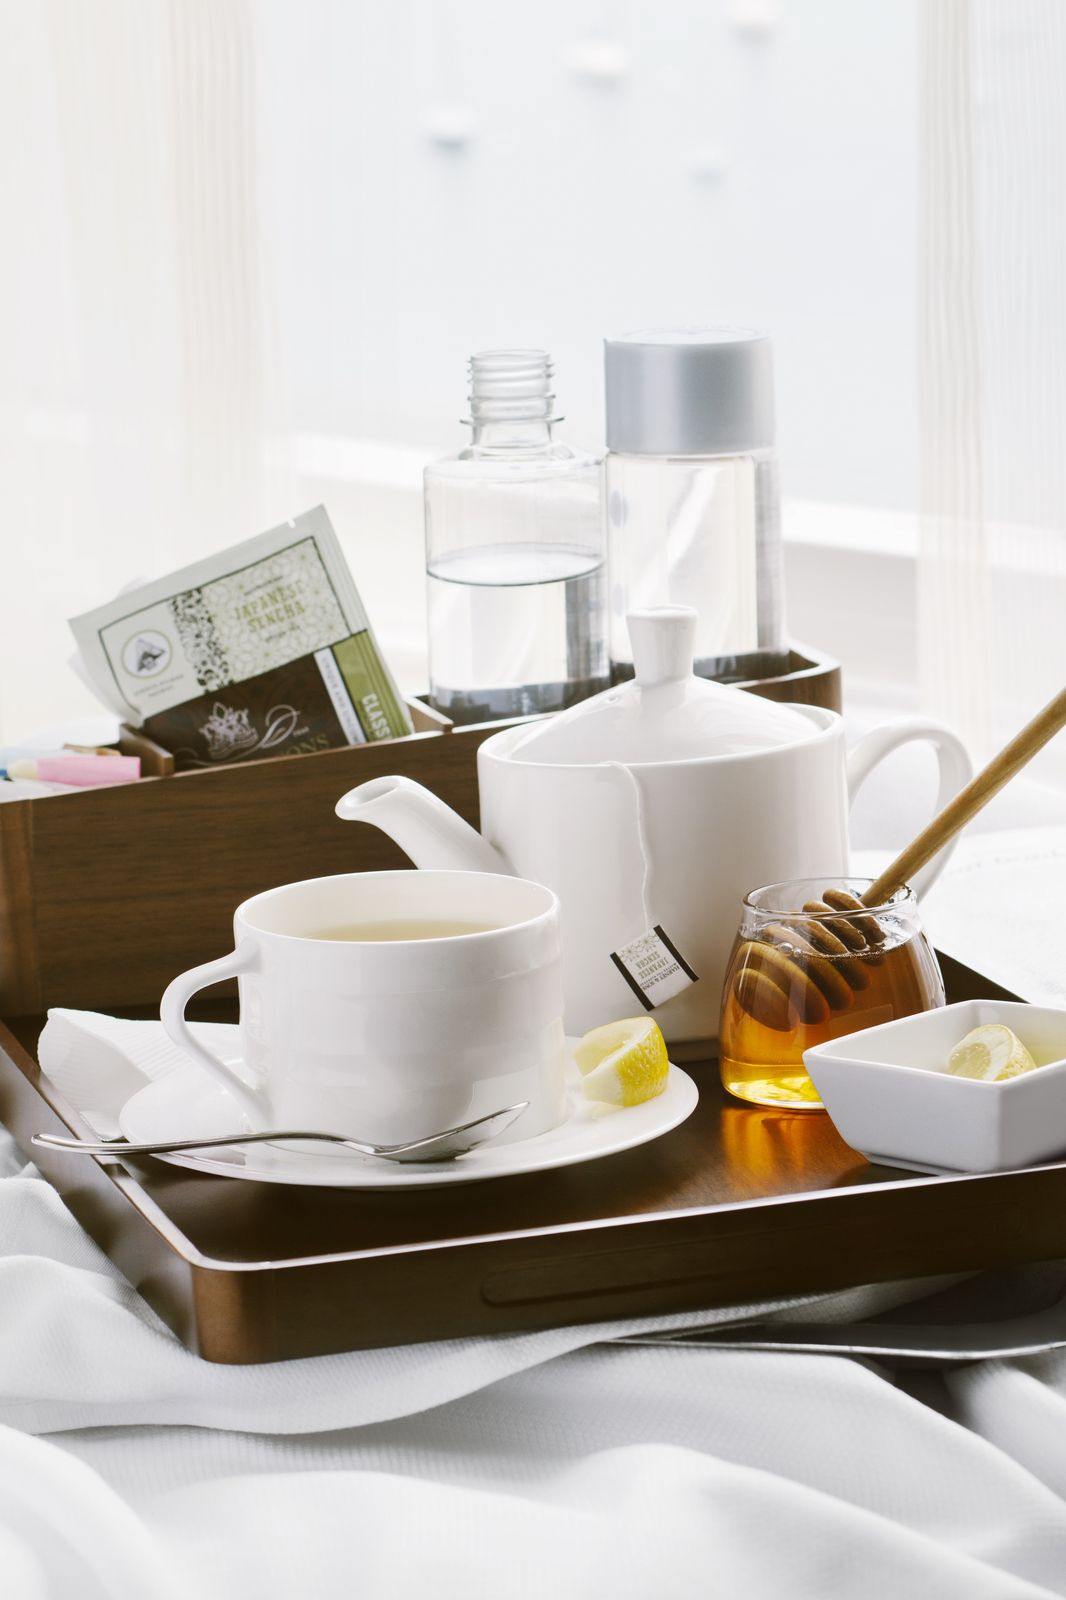 Tea and honey on a wooden serving tray